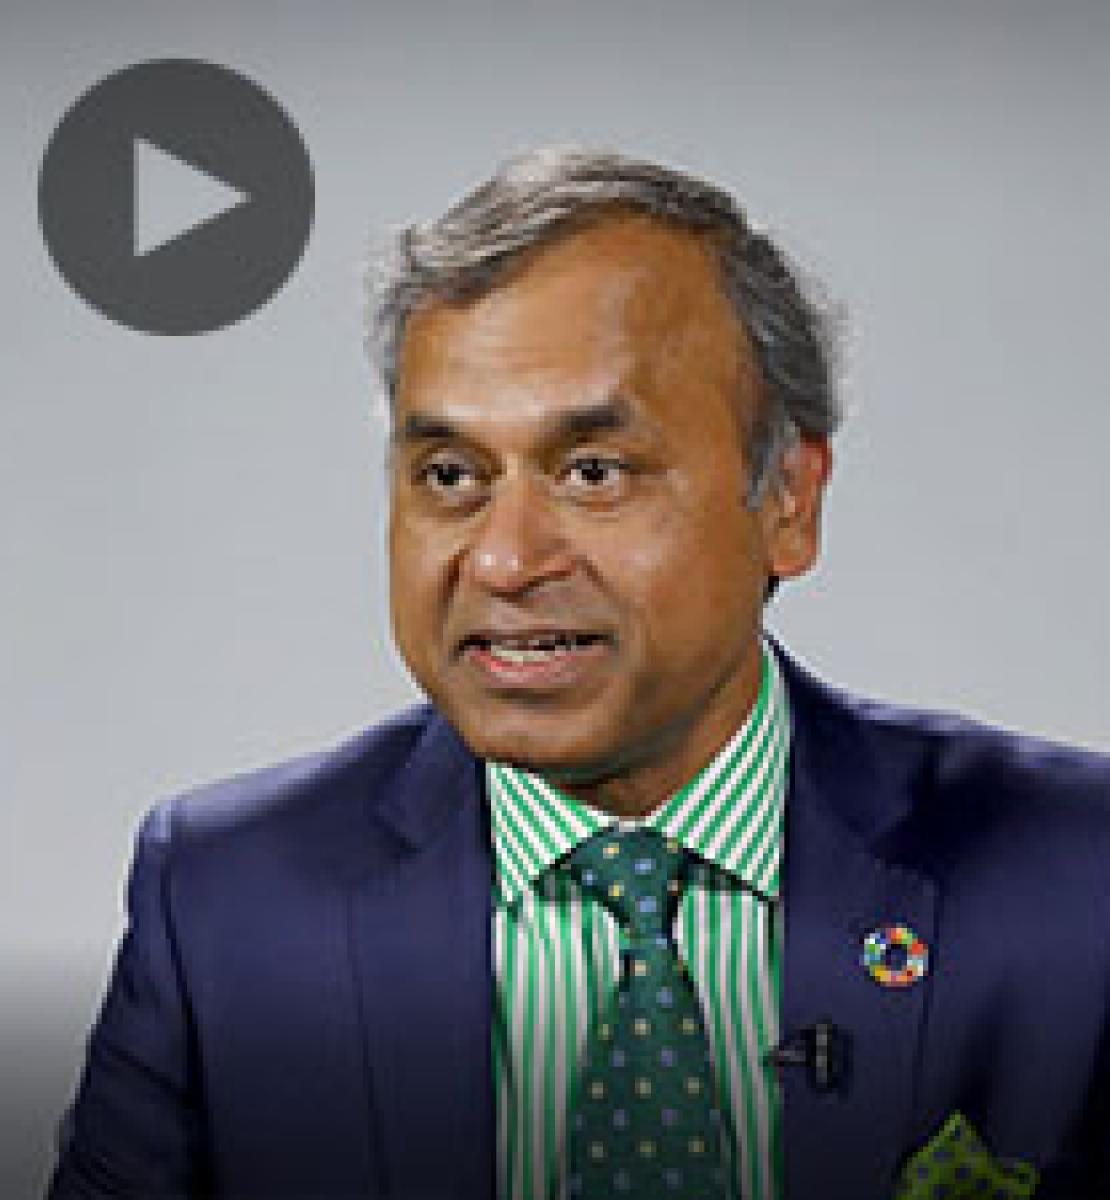 Screenshot from video message shows Resident Coordinator, Siddharth Chatterjee